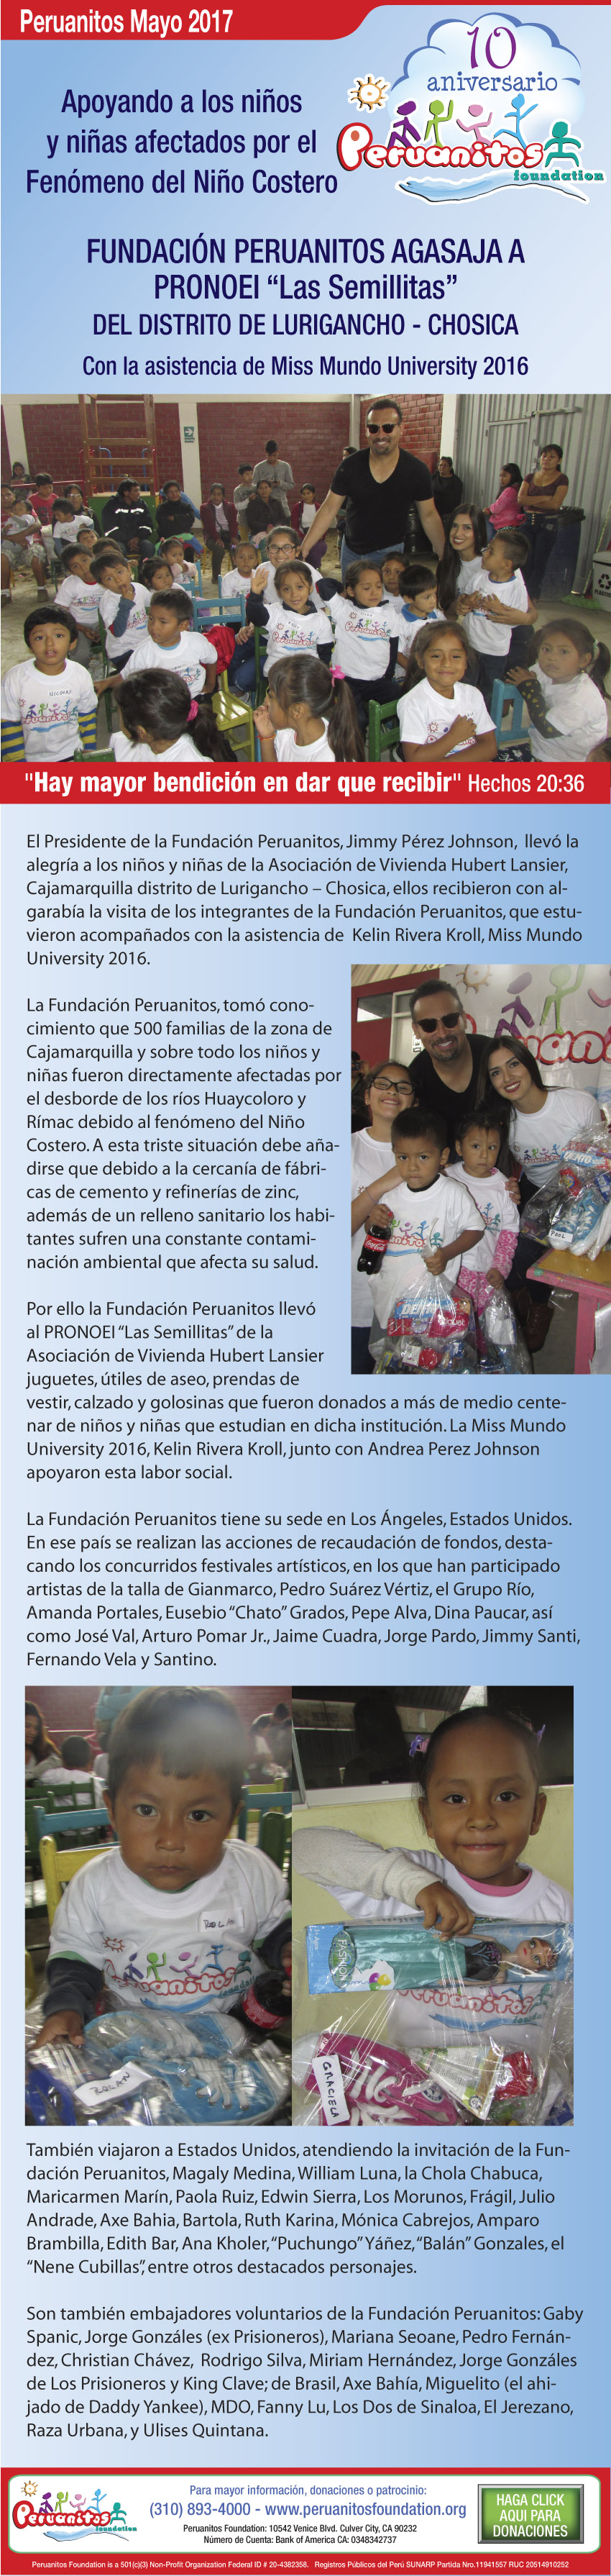 Peruanitos News Abril 2017